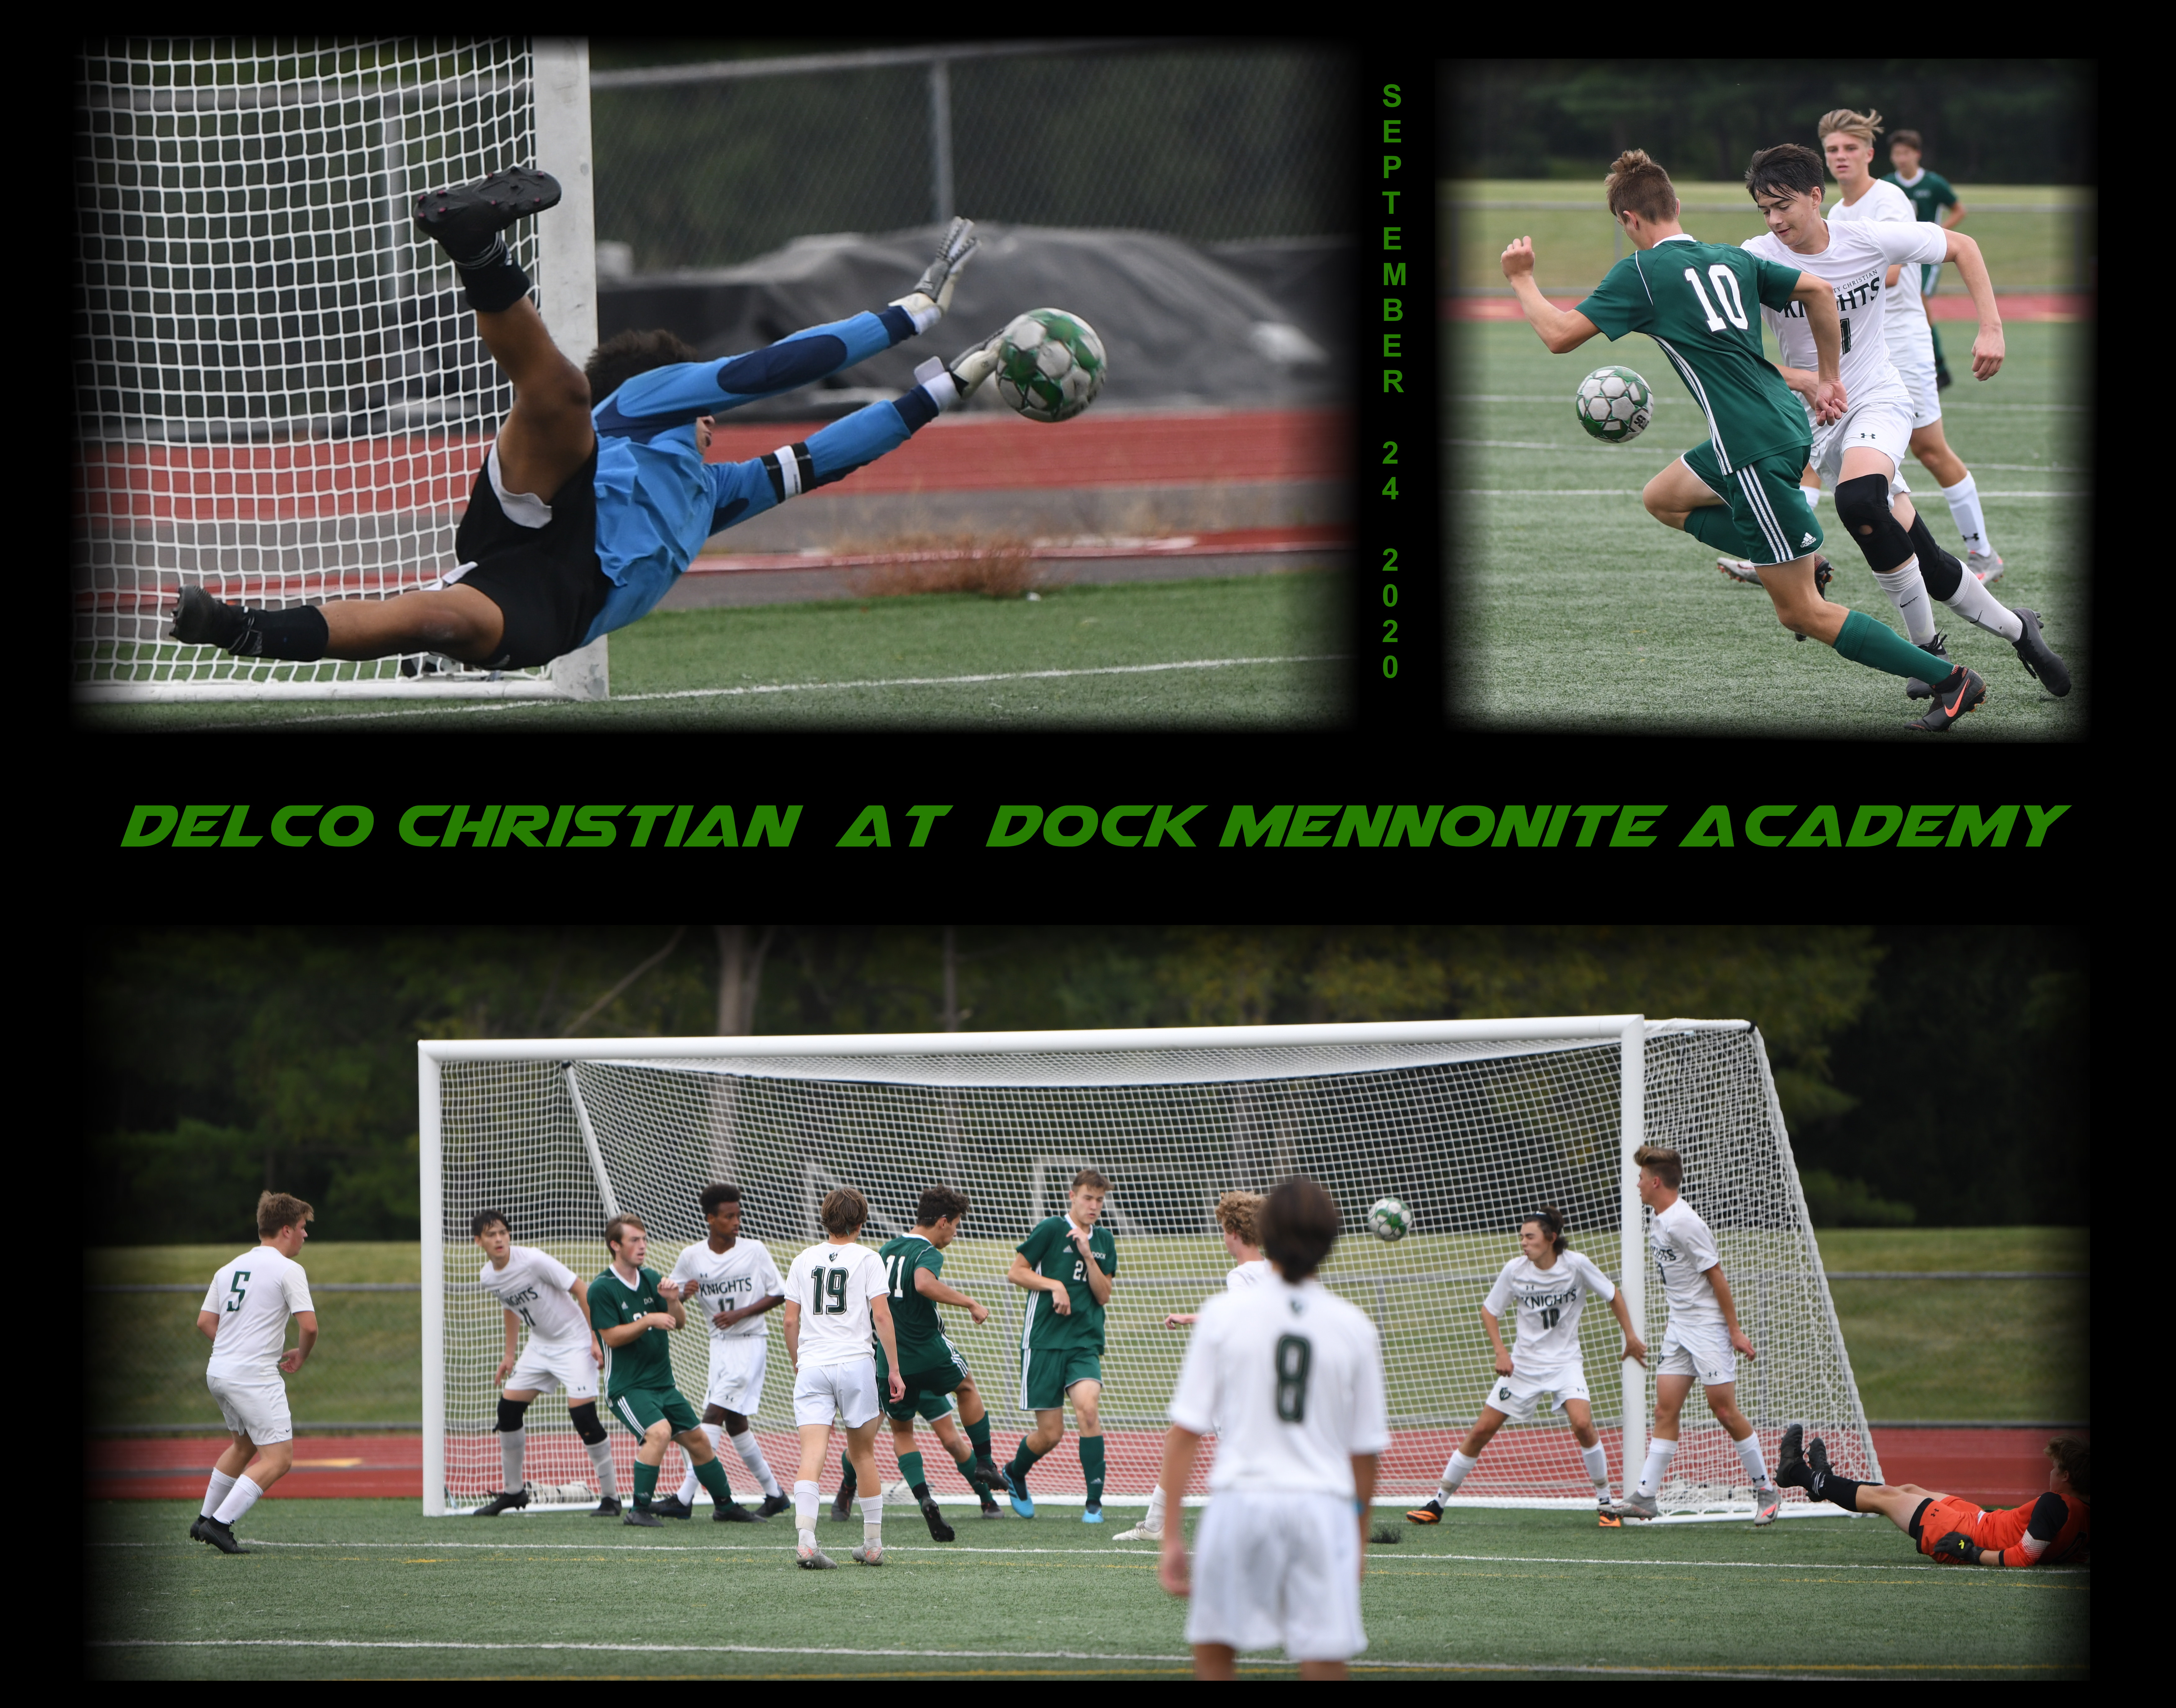 Bookend Scoring For Dock In Win Over Delco